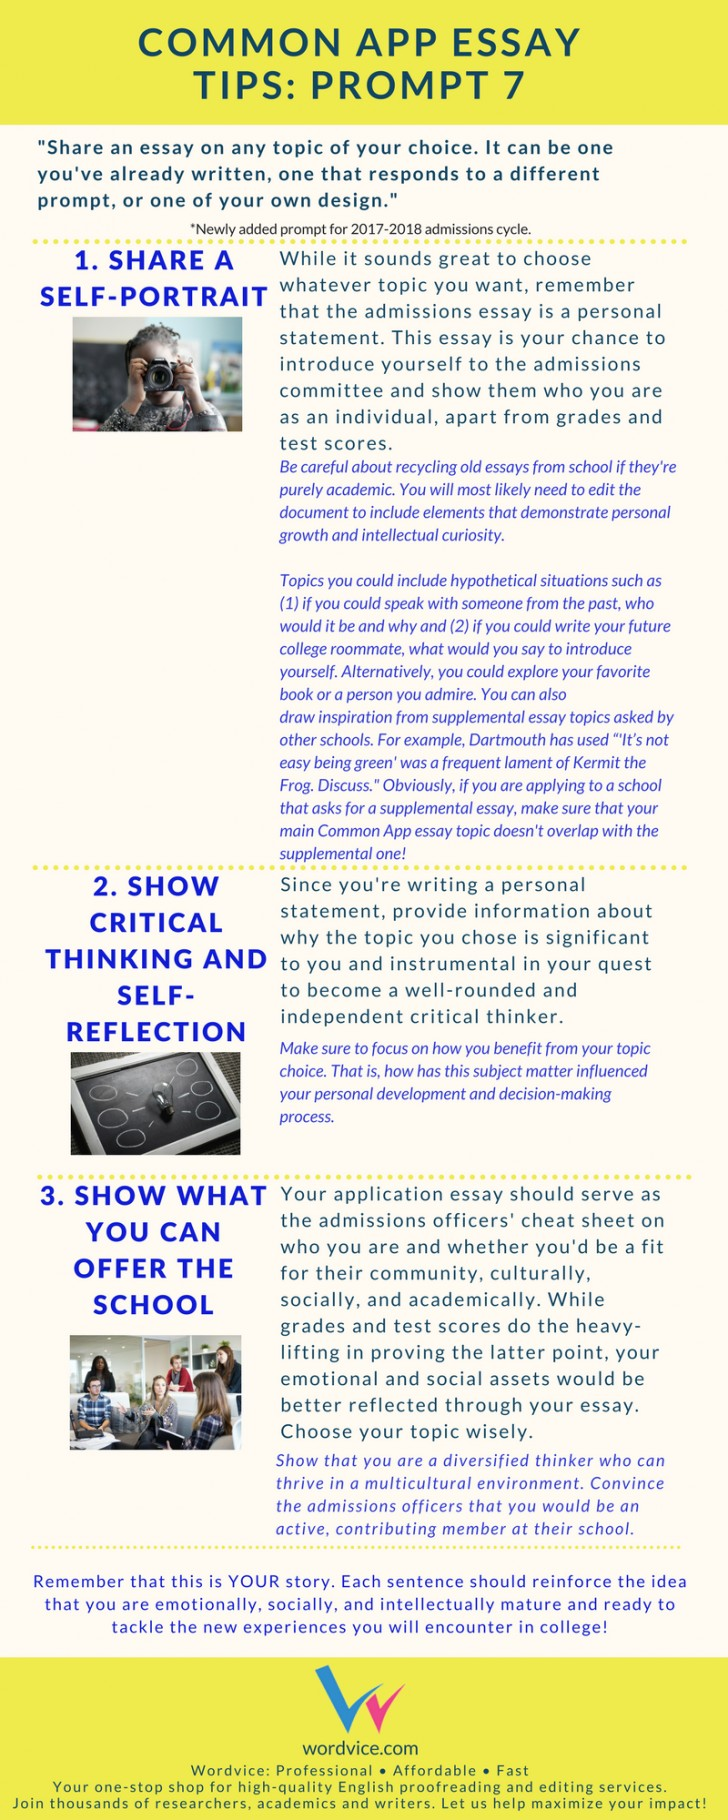 007 Common App Brainstormprompt Essay Example Formidable Prompts Examples Prompt 1 Transfer 2017 2015 728